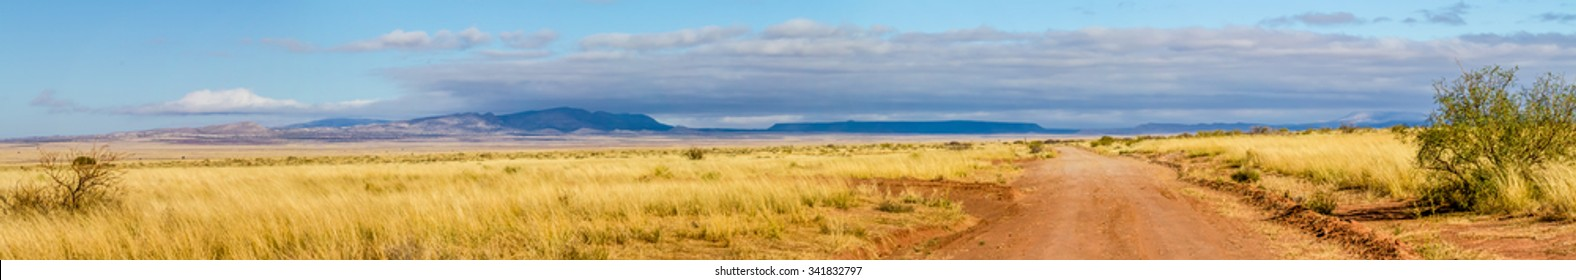 An Extremely Wide High Resolution Panoramic View of an Old Dirt Road Heading Out into the Desert of New Mexico Towards a Northern Mountain Range.